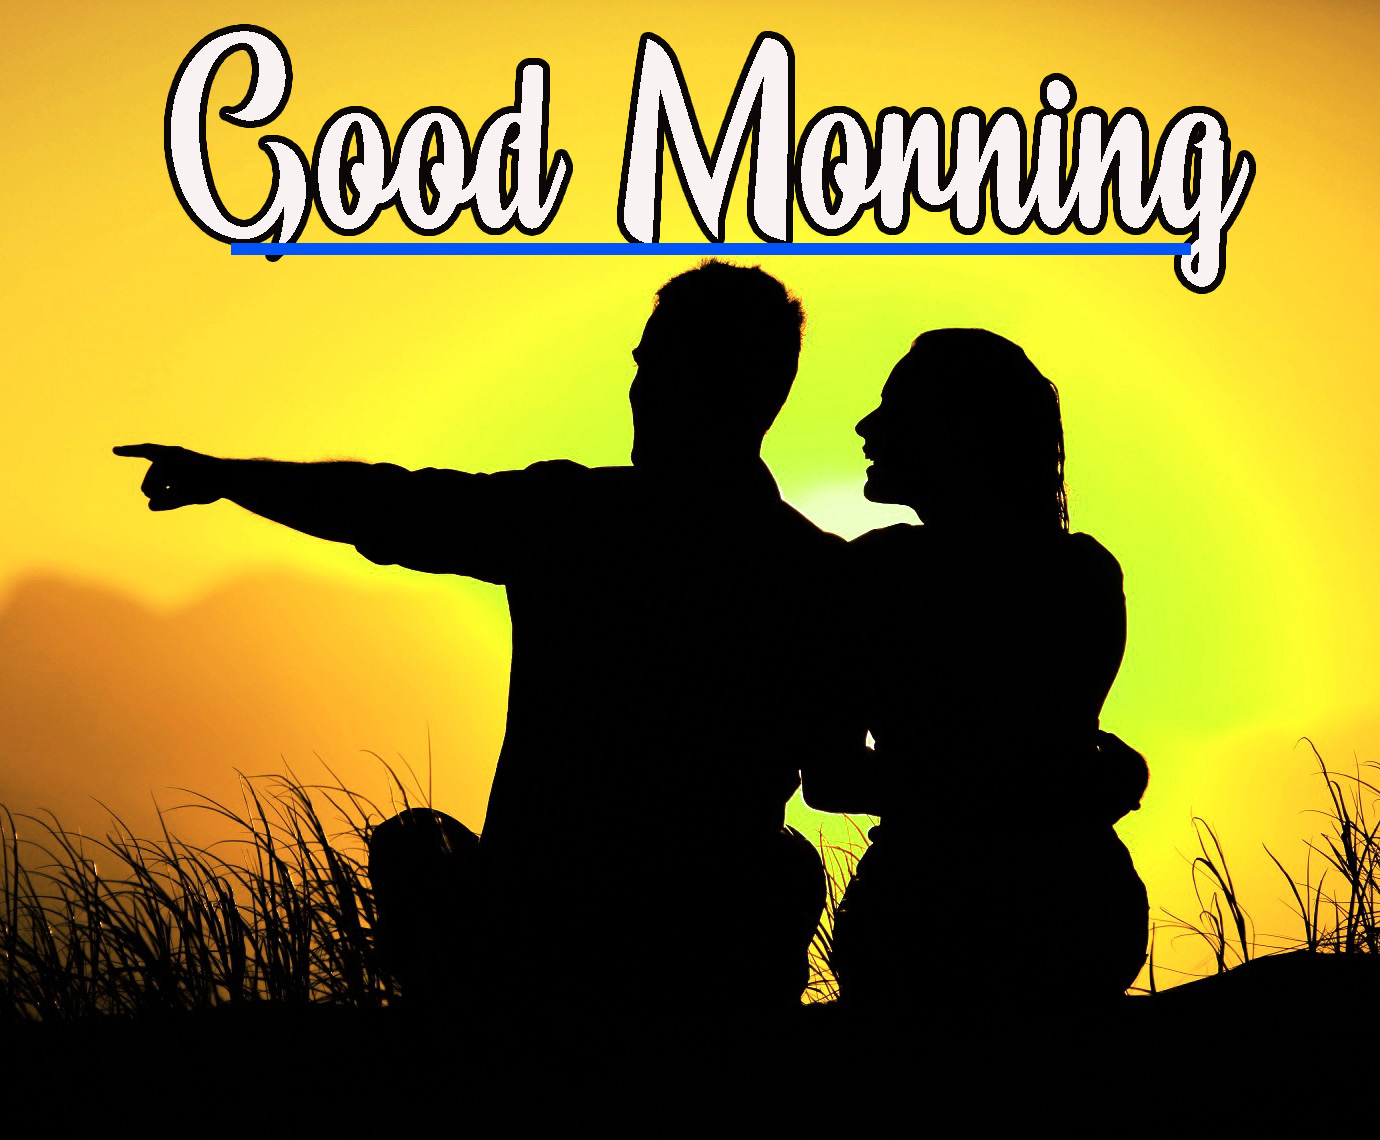 Romantic Good Morning Images HD Wallpaper Download